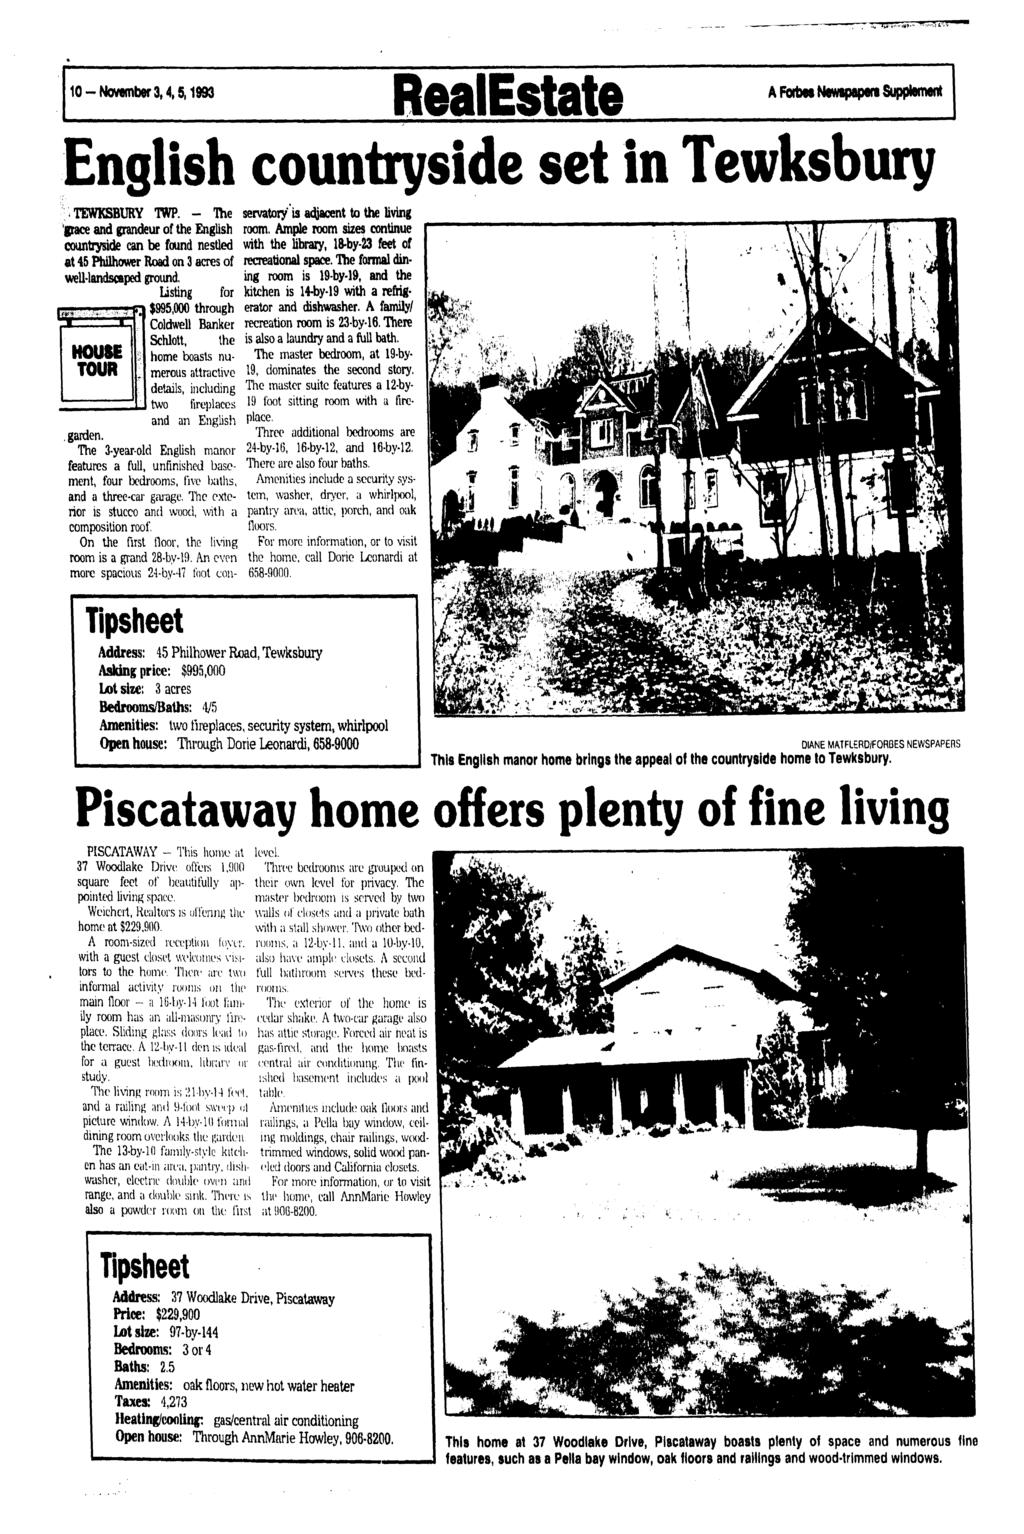 10 -Novembers, 4,5,1993 RealEstate A Forbes Newipapen Supplement English countryside set in Tewksbury ; TEWKSBURY TWP.